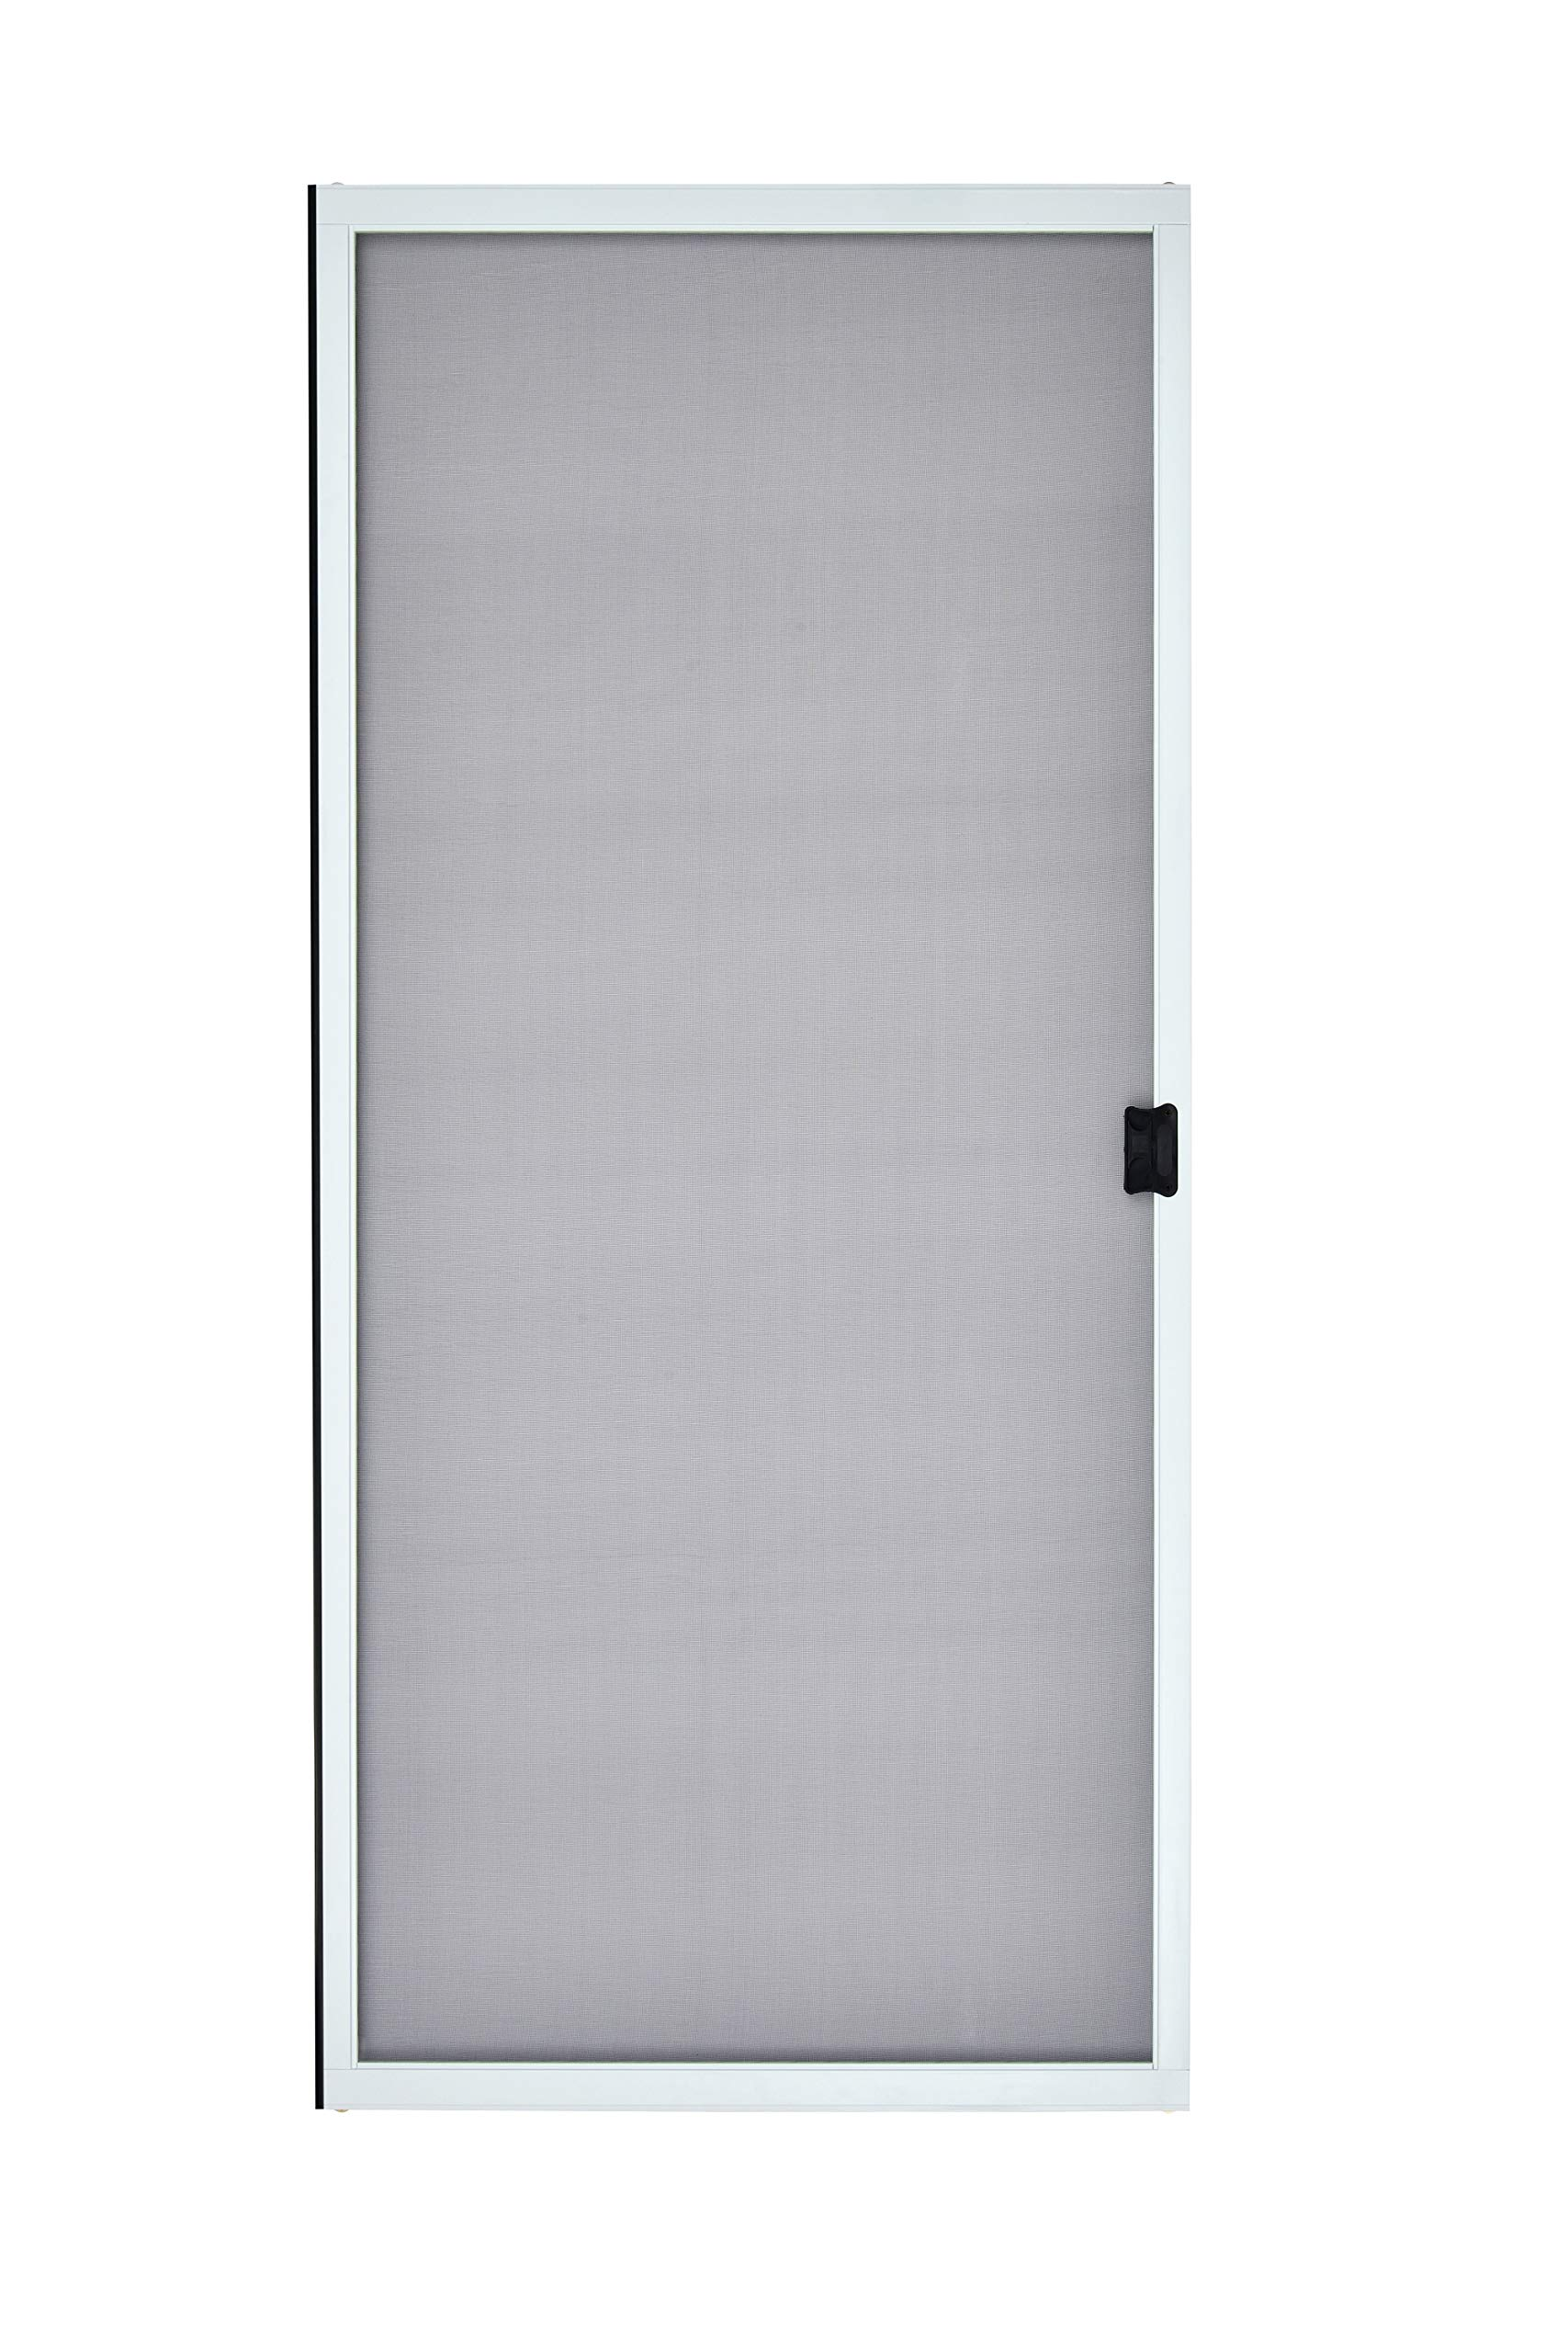 K.D. Heavy Duty Sliding Patio Screen Door Kit (36'' x 96'', White) - 1-7/8'' Frame by Guardian Built